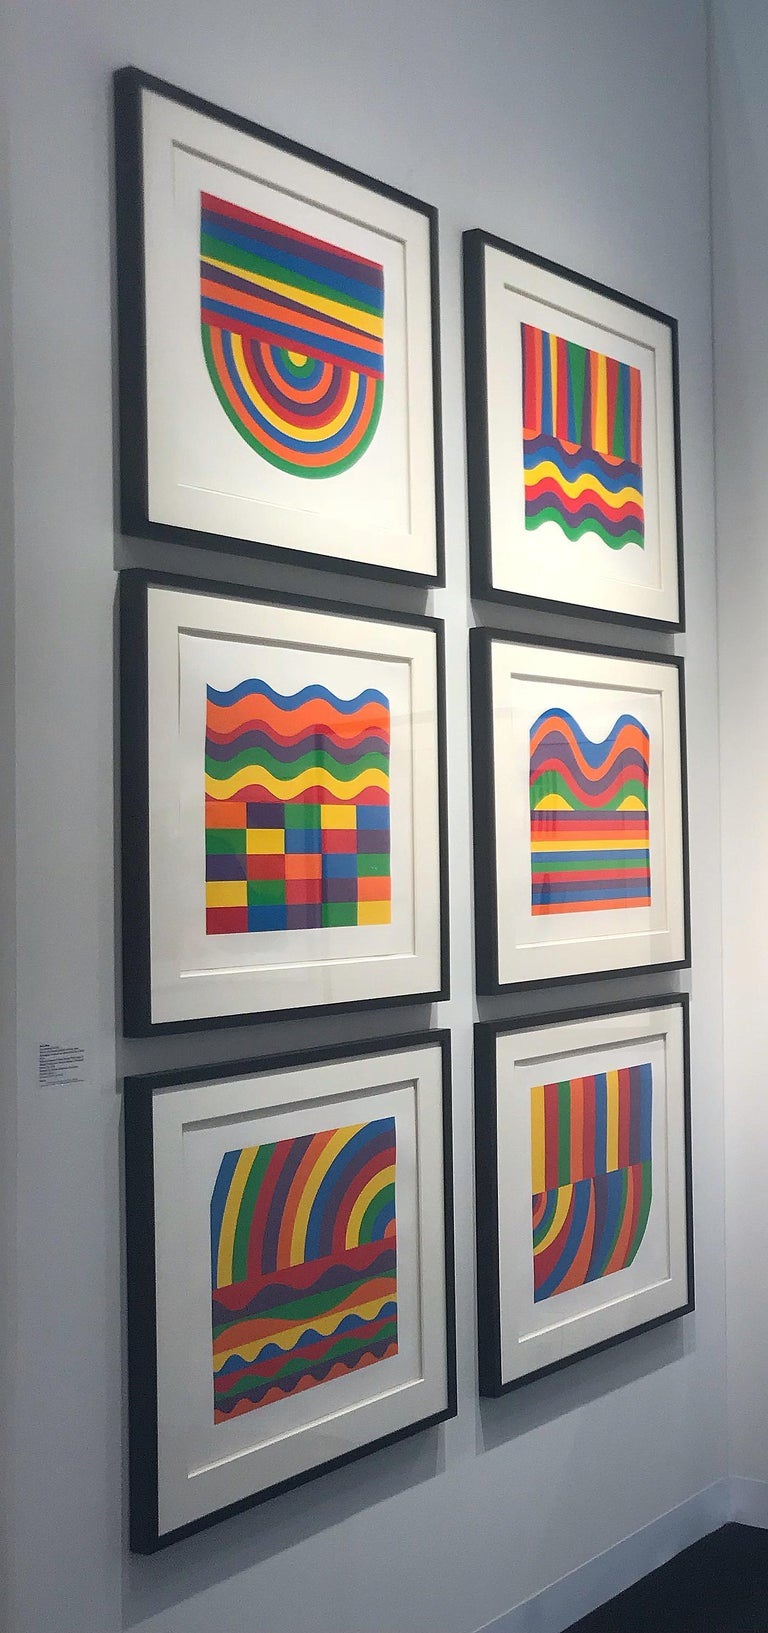 Arcs and Bands in Color - Contemporary Art, Linocut, Minimalism, Conceptual art  - Blue Abstract Print by Sol LeWitt